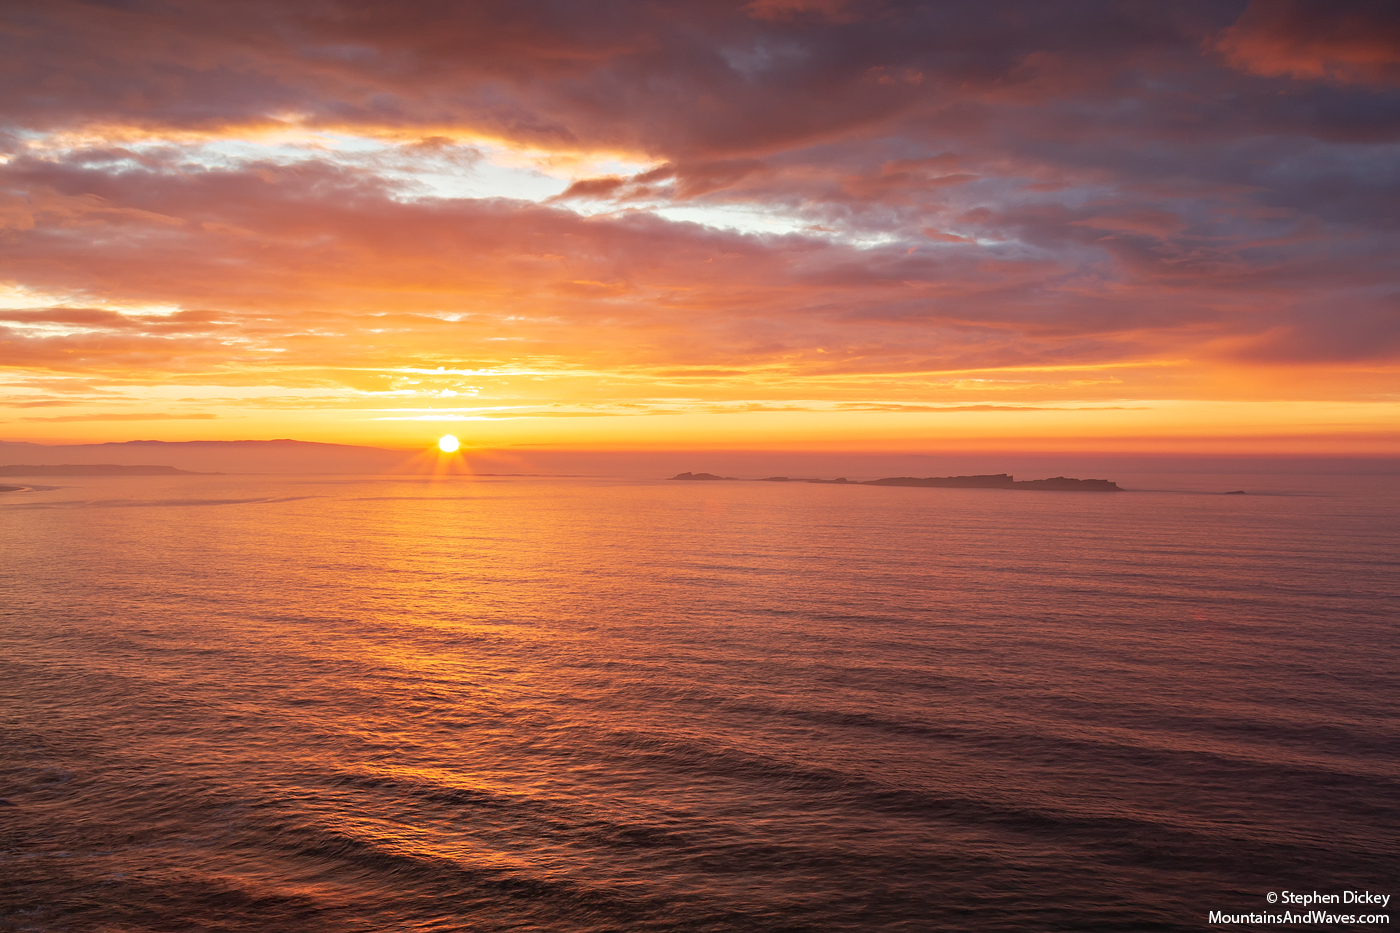 Sunset Over the Skerries, Northern Ireland